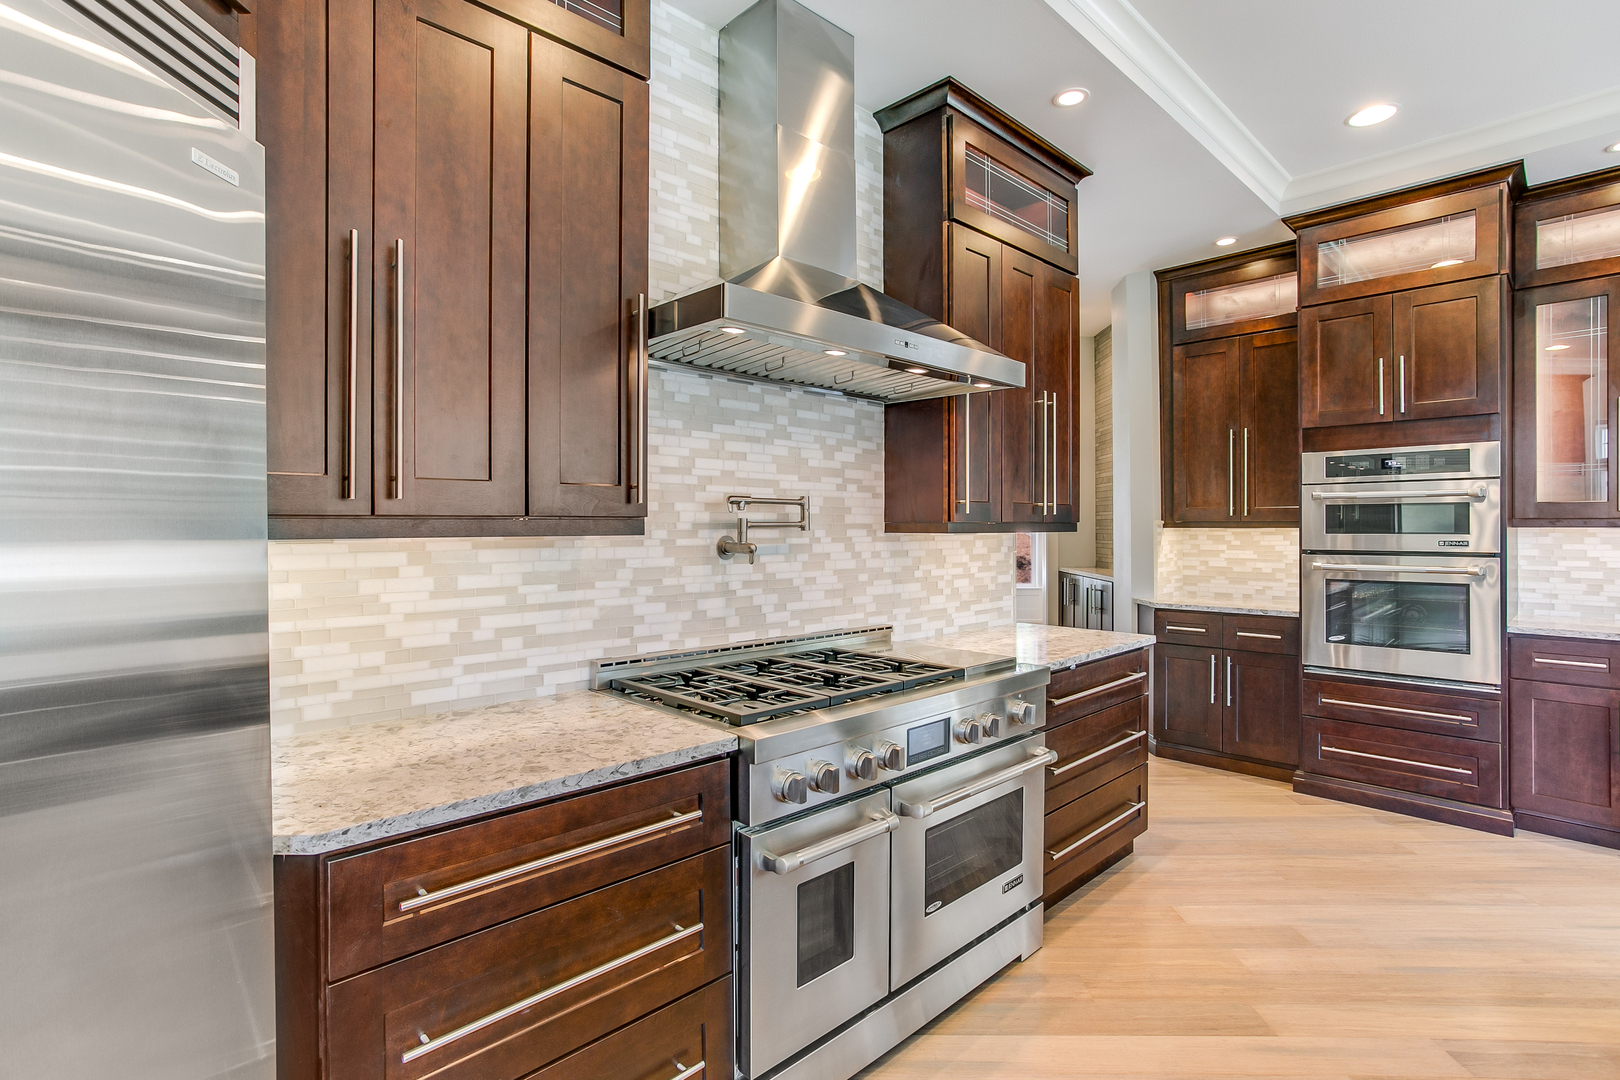 with foot islands dmujeres the decor prepare countertops to awesome residence modern regard kitchen island ft countertop